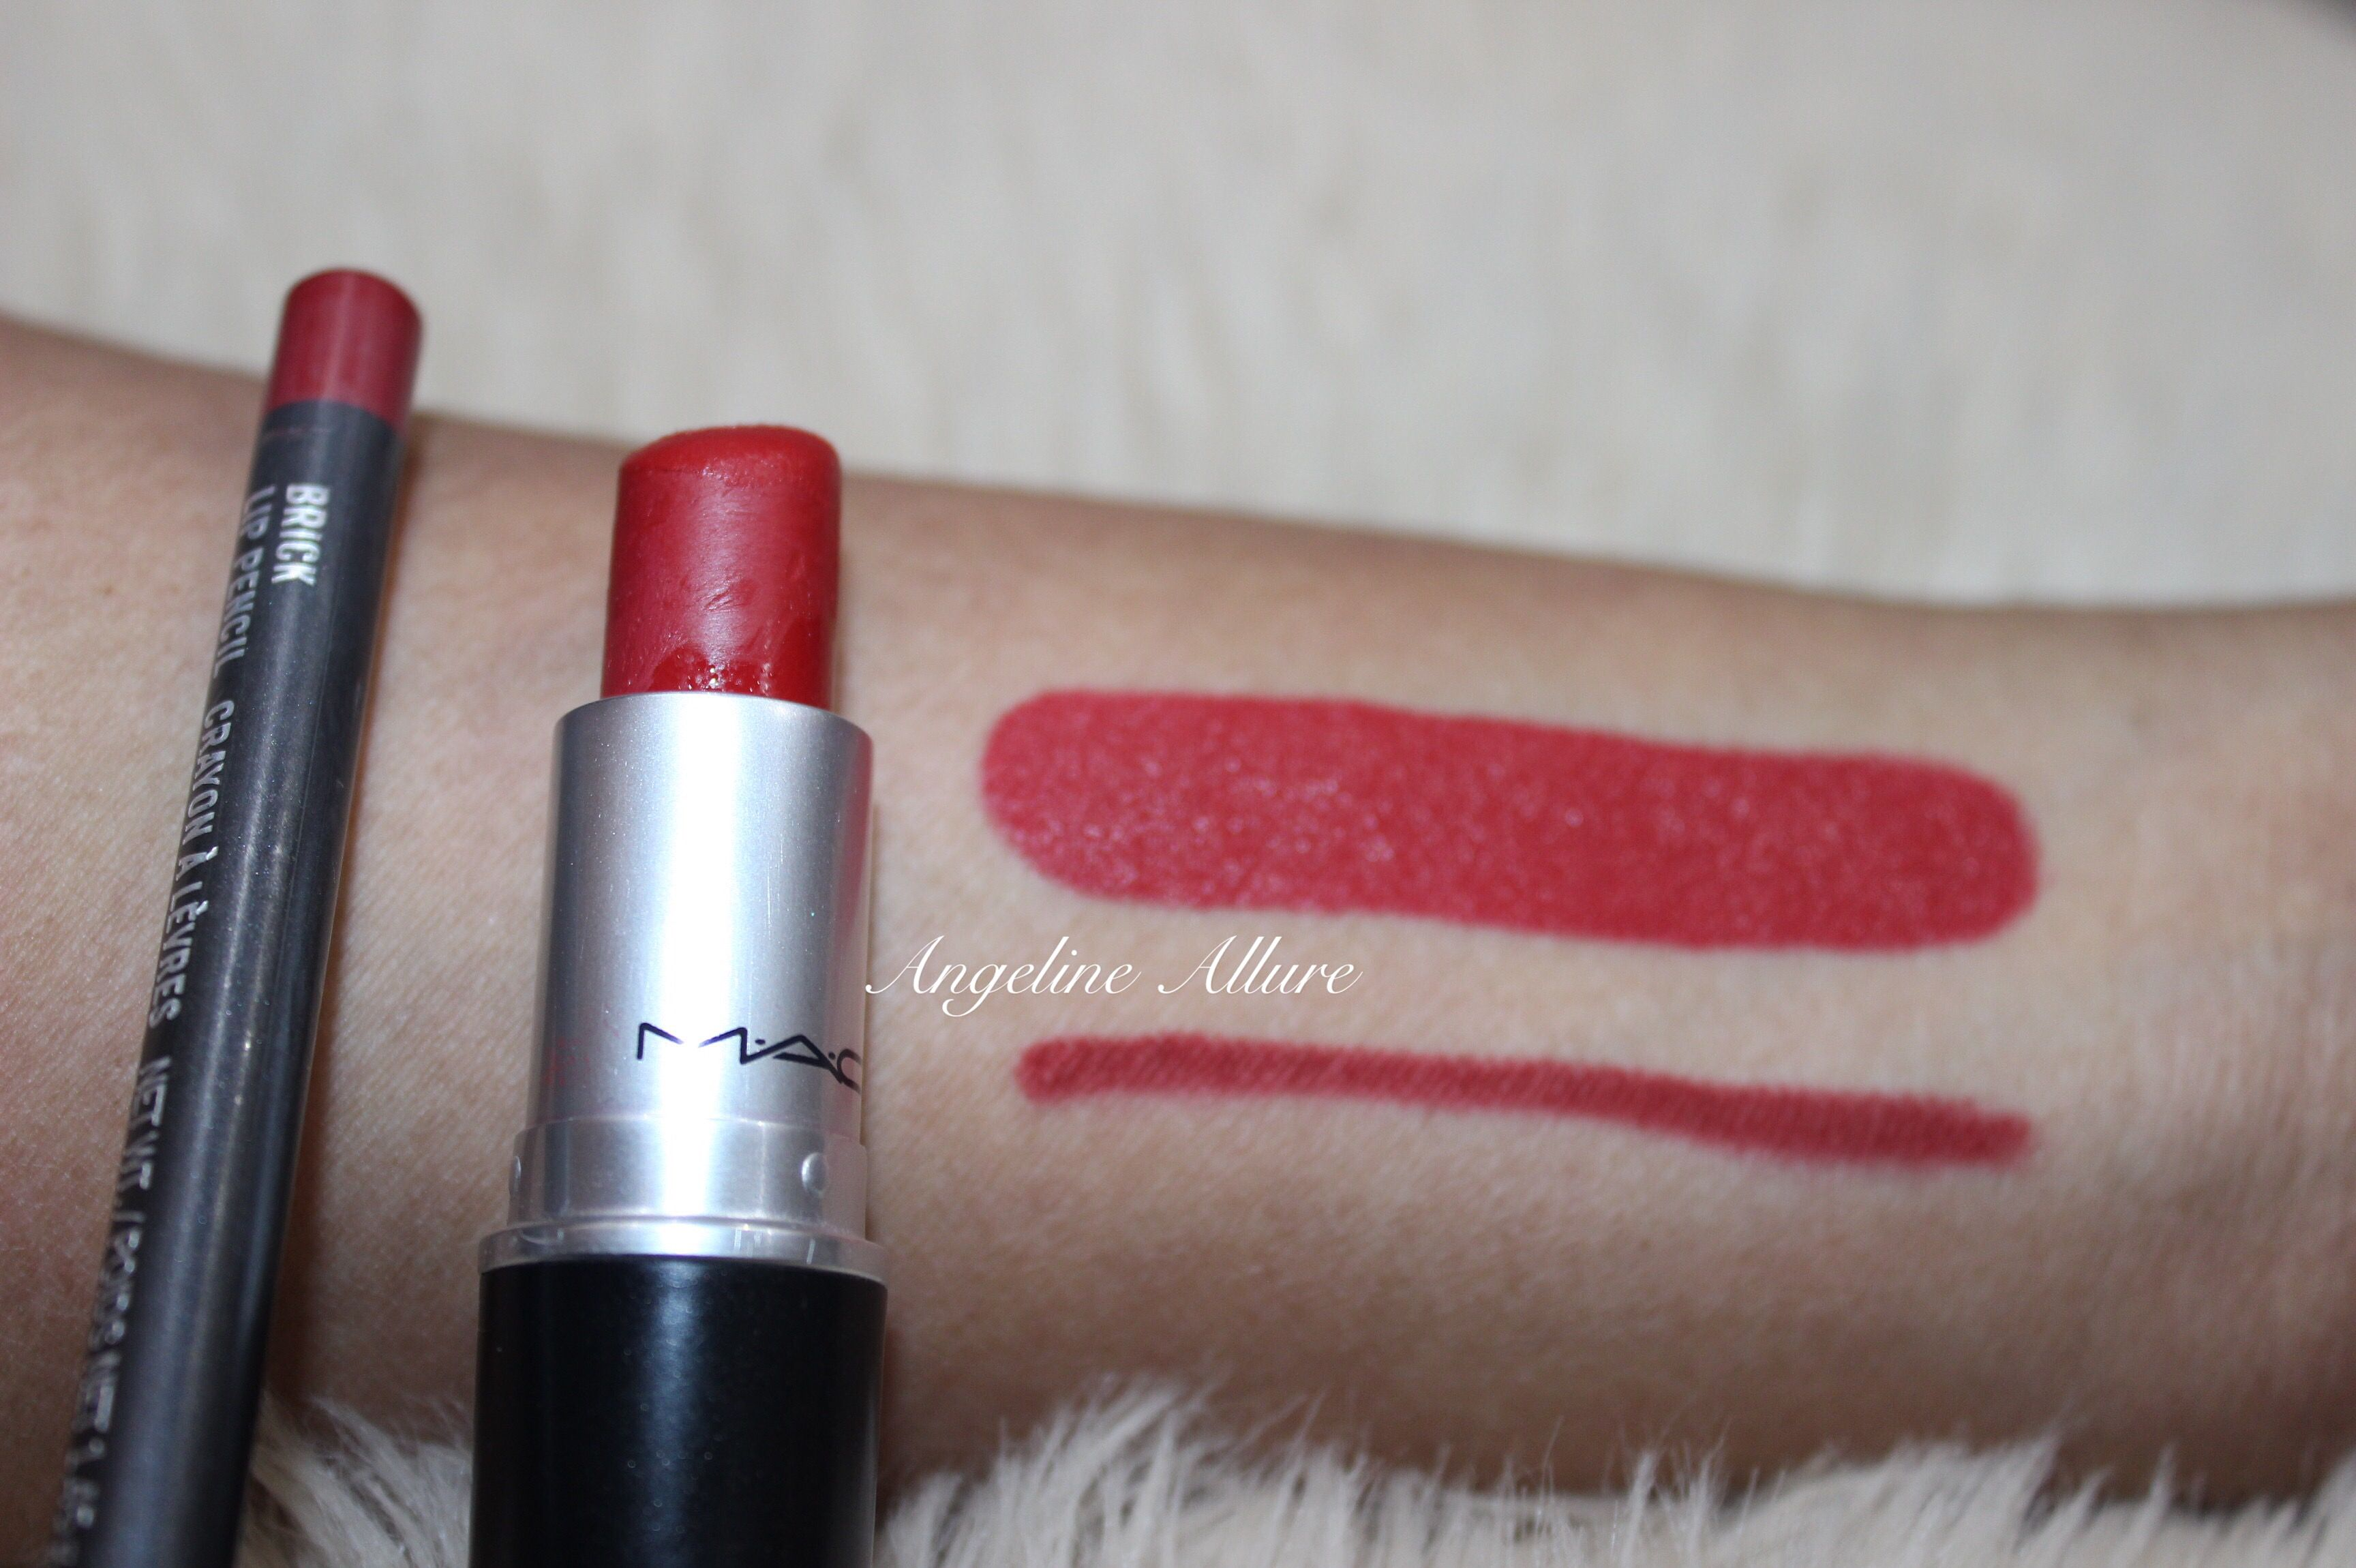 Mac Brick Lip Pencil Perfectly Matches Russian Red Lipstick I Draw